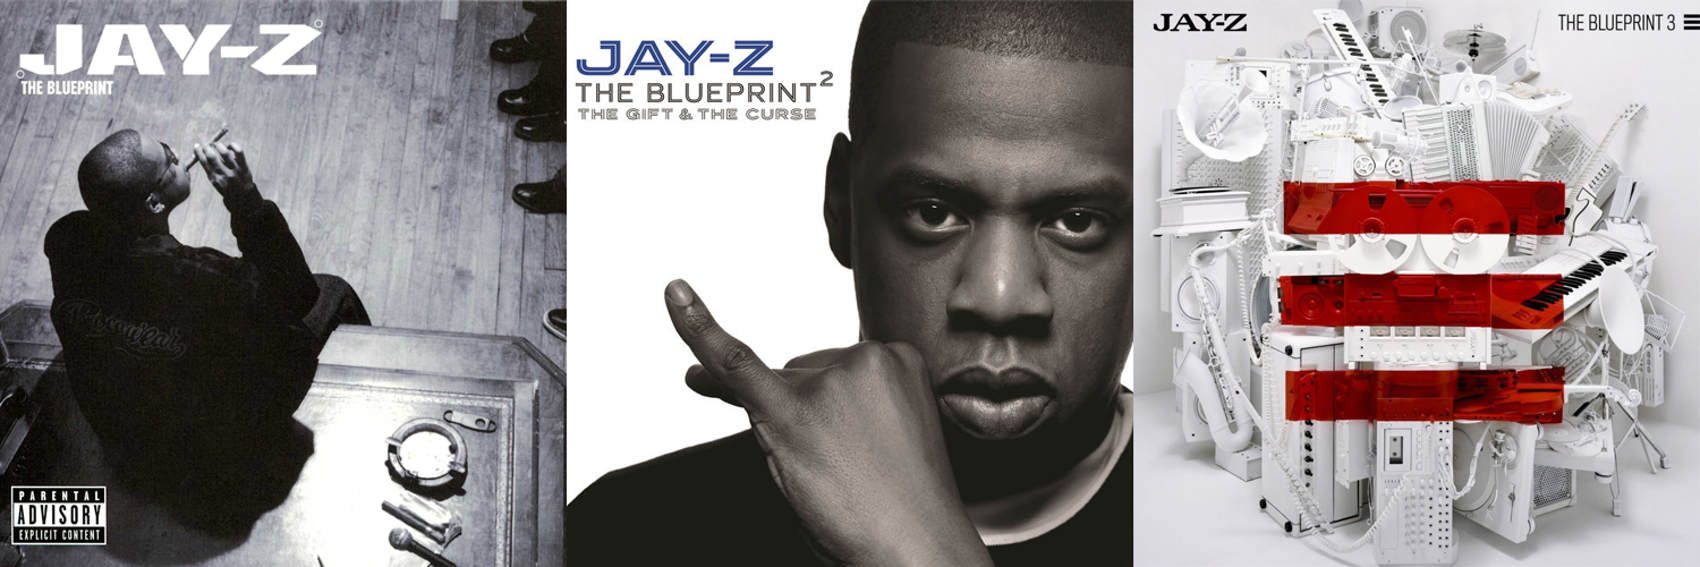 The 10 best album trilogies to own on vinyl vinyl me please jay z the blueprint 2001 the blueprint 2 the gift the curse 2002 and the blueprint 3 2009 malvernweather Choice Image